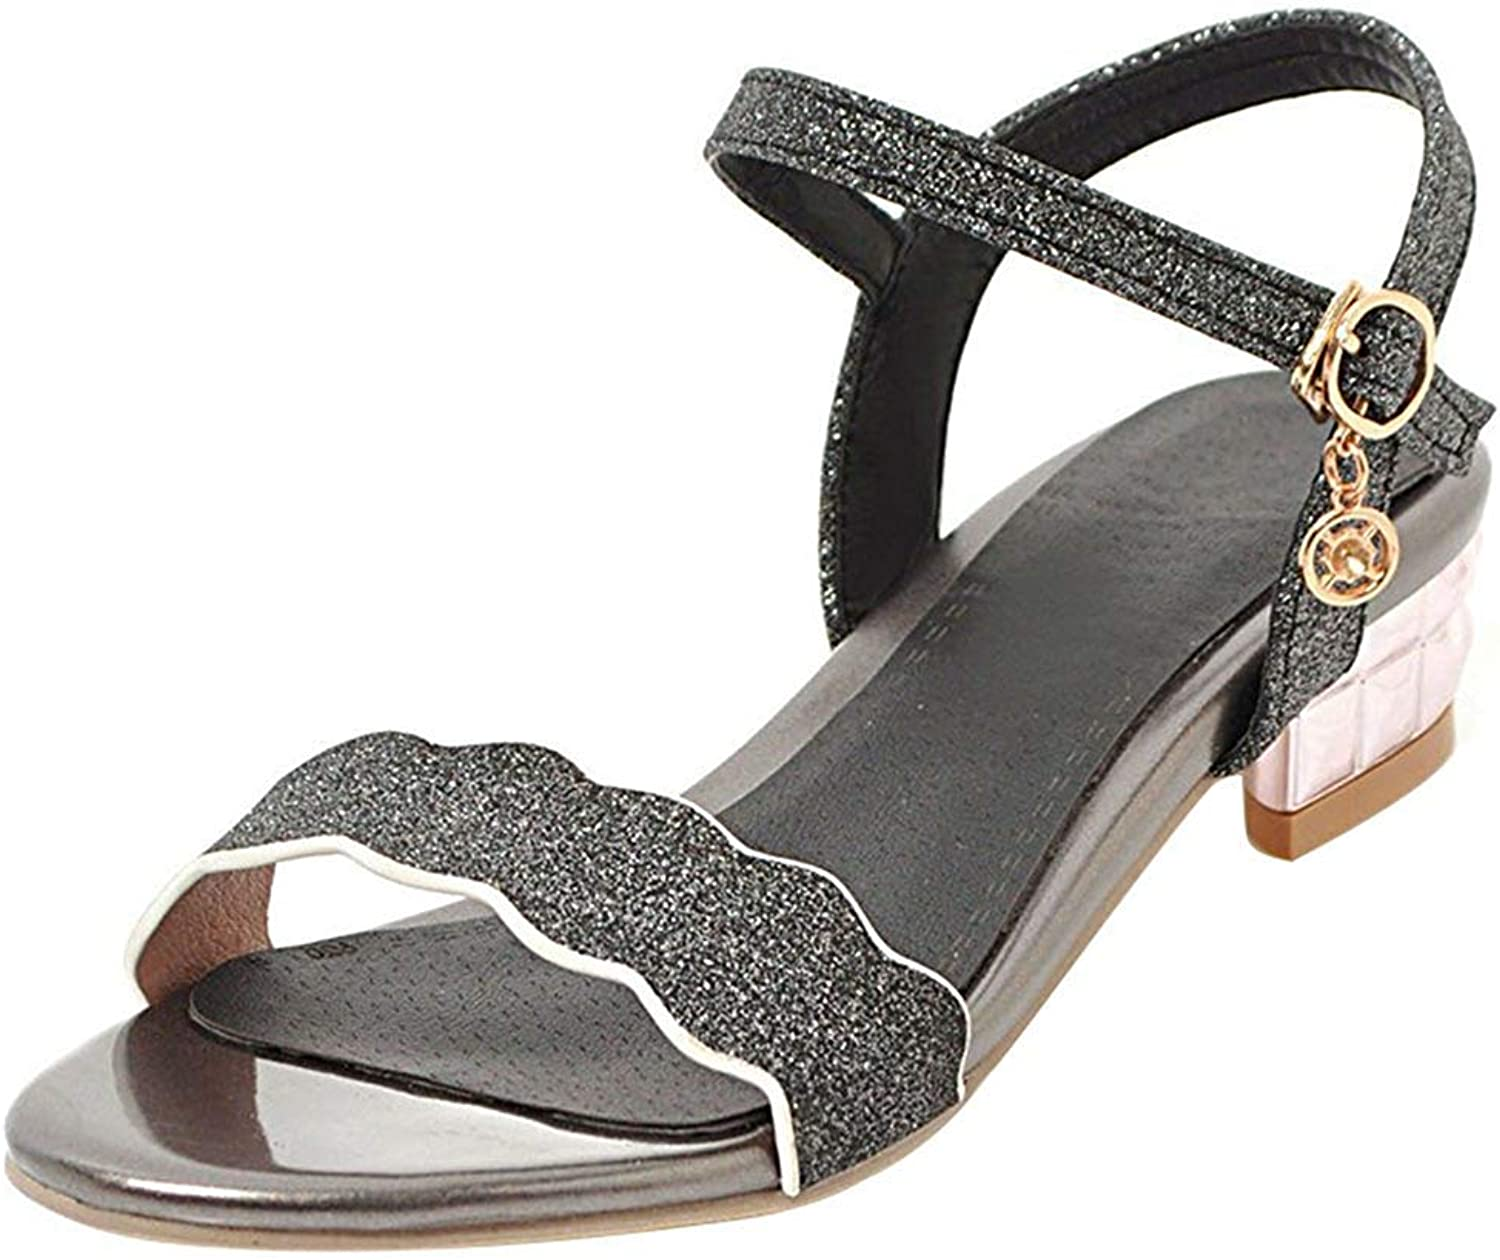 Gedigits Women's Comfy Sequined Open Toe Buckle Ankle Strap Bow Block Heel Sandals shoes Black 4.5 M US